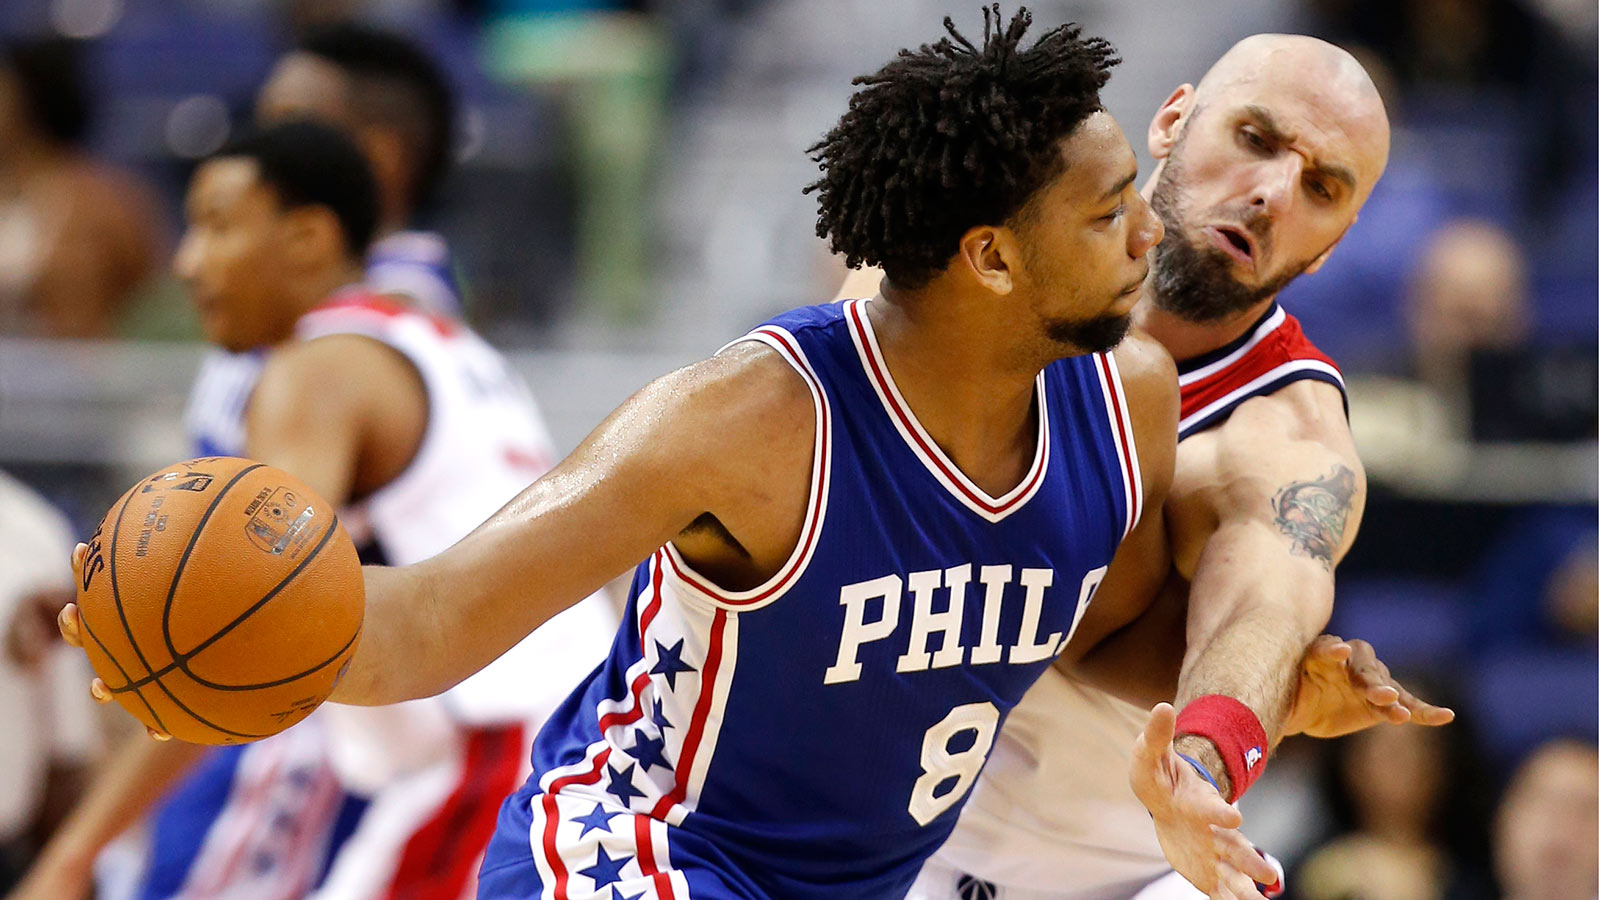 No. 3 pick Okafor impressive in NBA debut as 76ers fall to Wizards